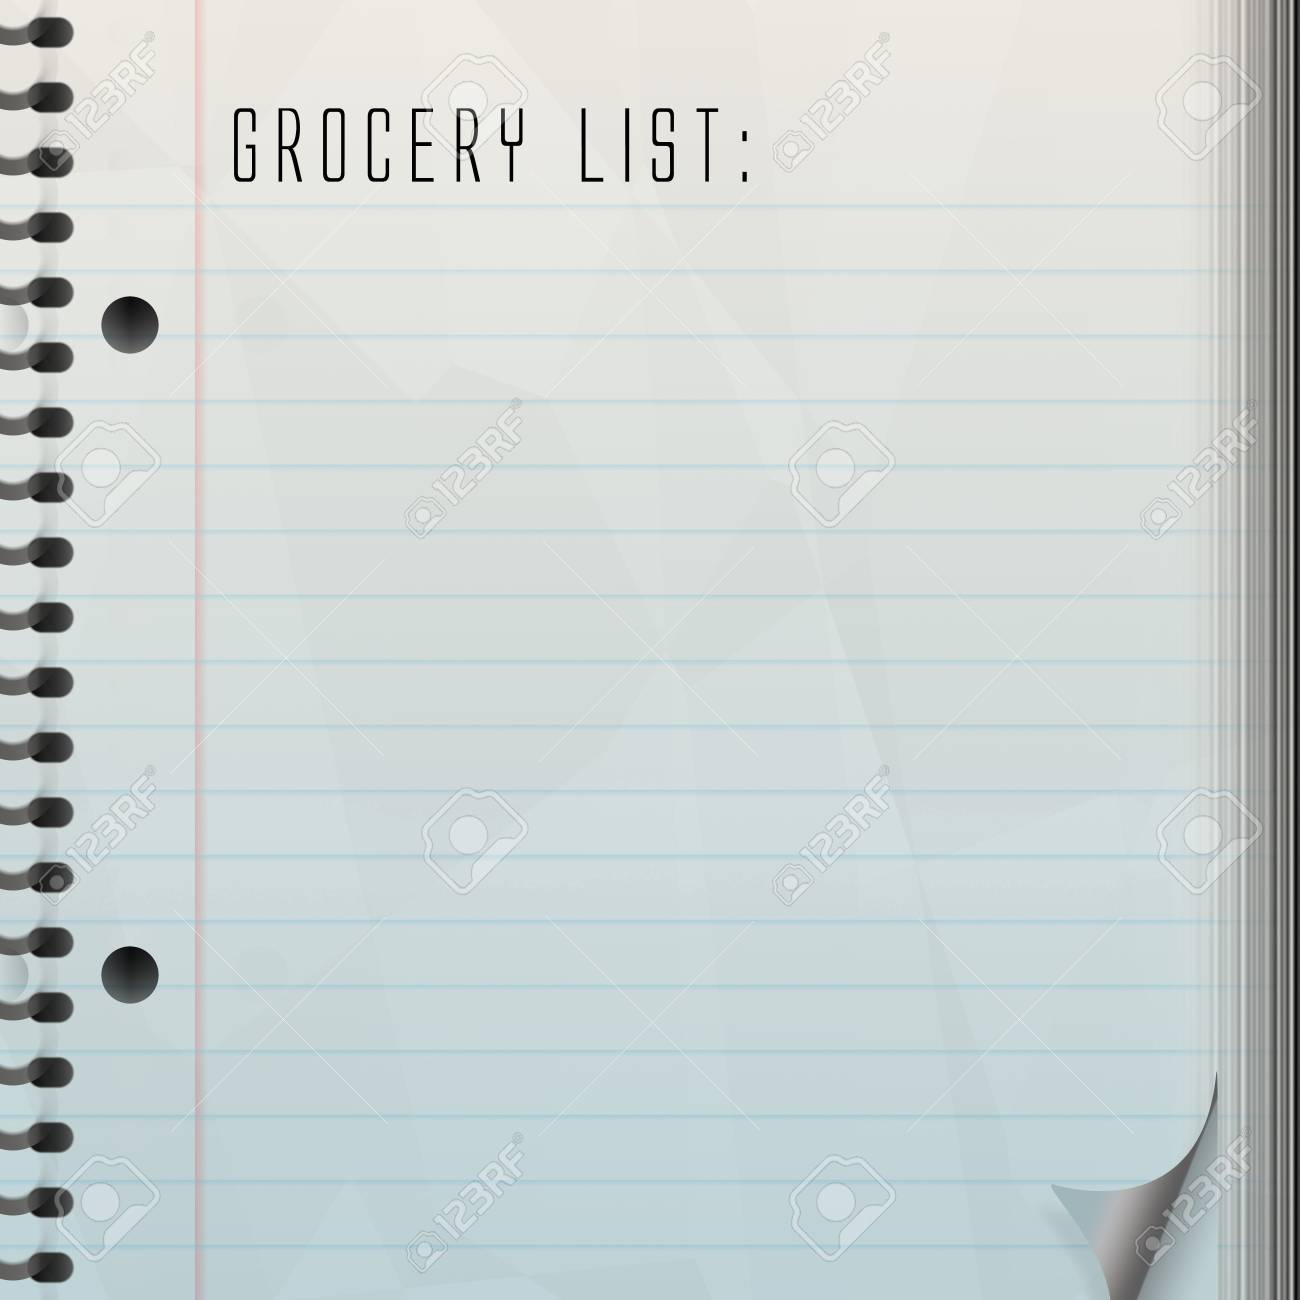 a blank grocery list with a page curl. stock photo, picture and